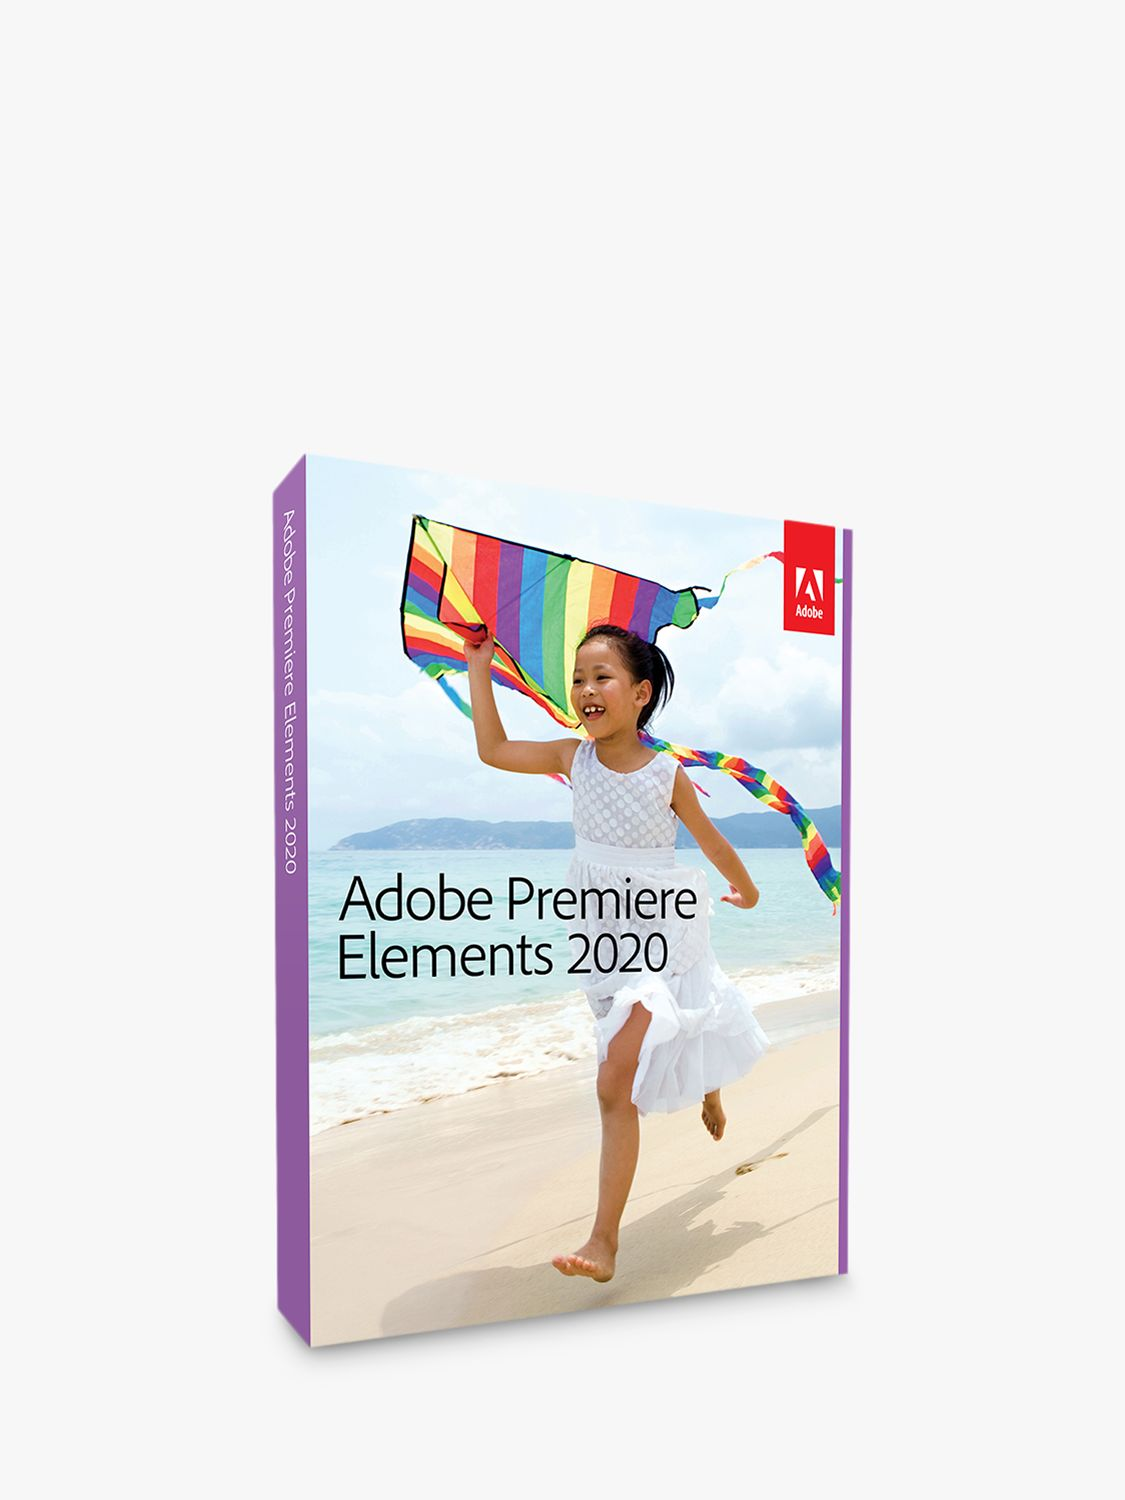 Adobe Adobe Premiere Elements 2020, Video Editing Software